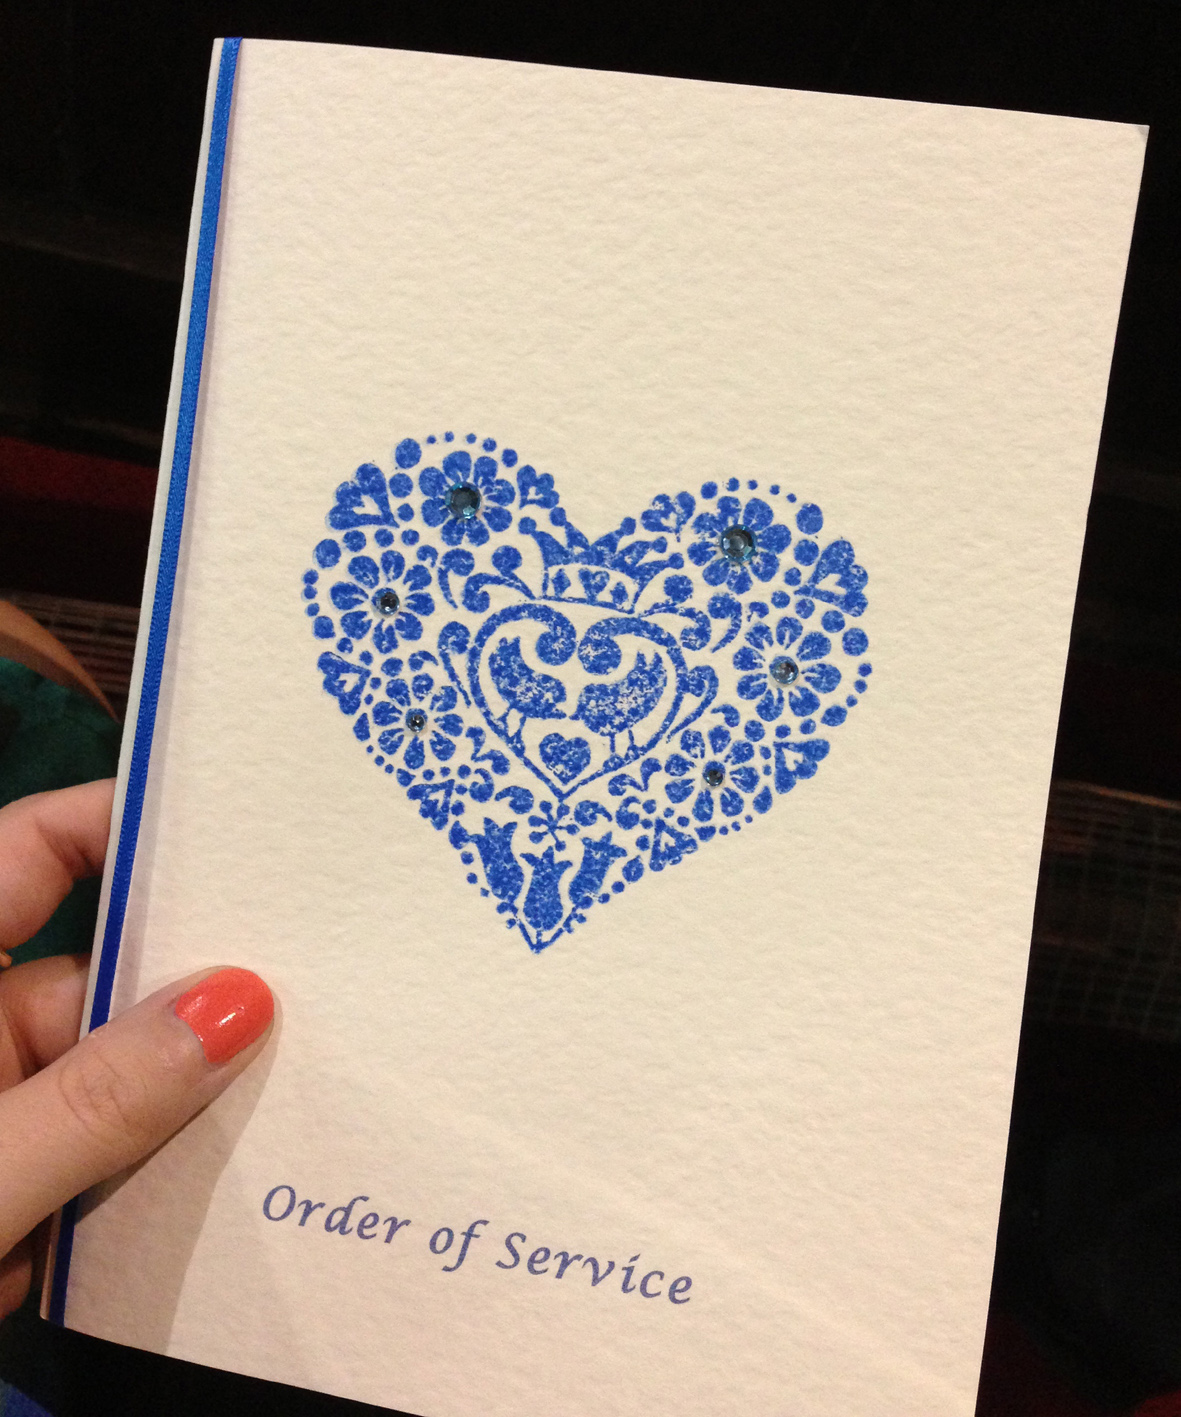 Order of service